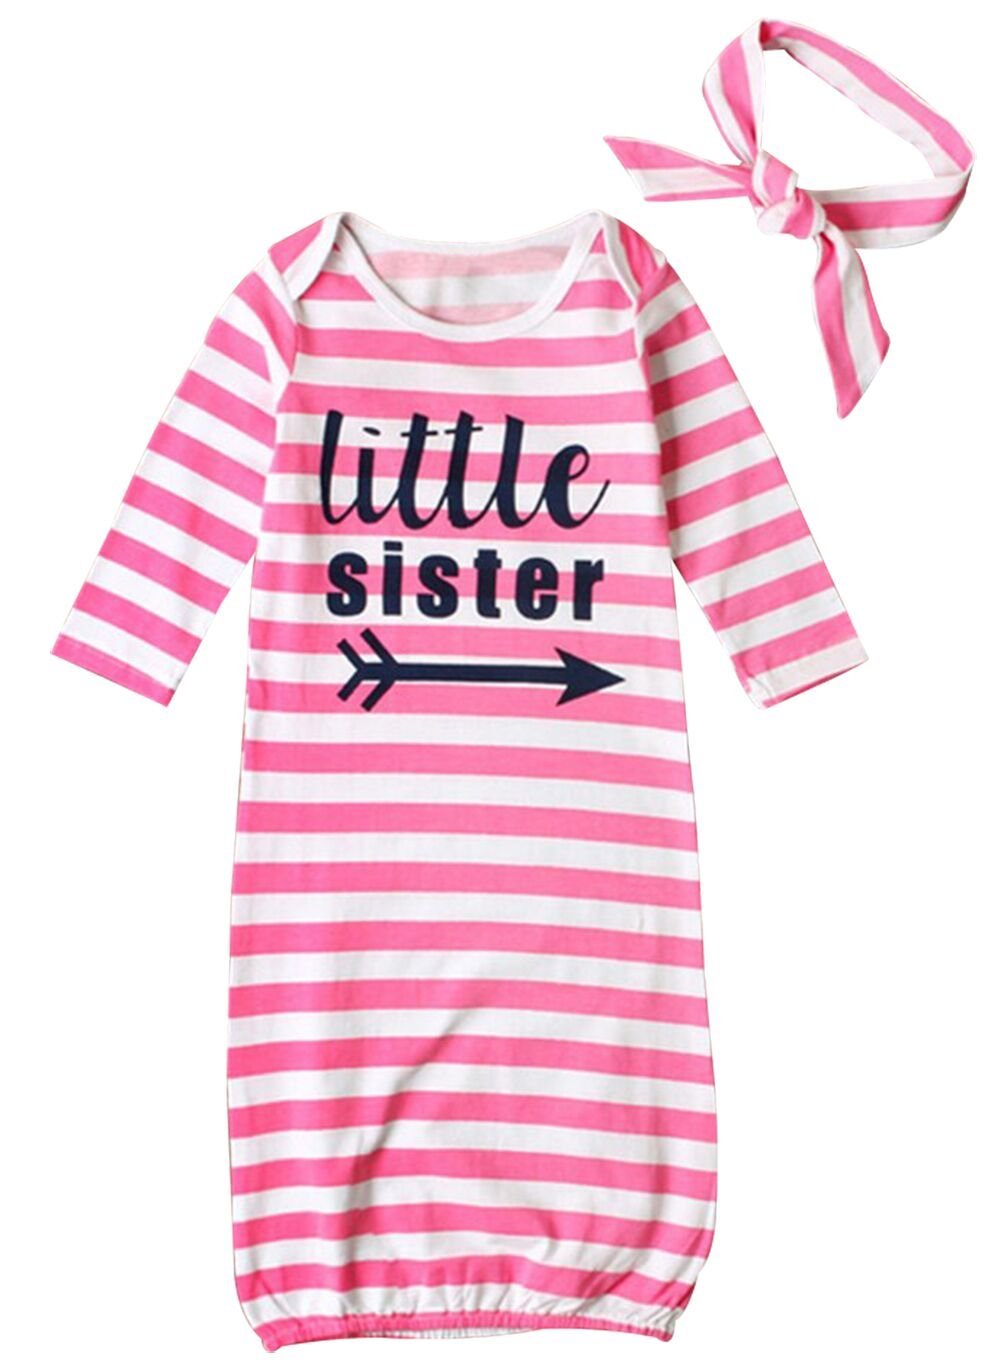 Newborn Baby Boys Girls Letters Print Sleep Gowns Striped Take Home Outfit BANGELY J002U